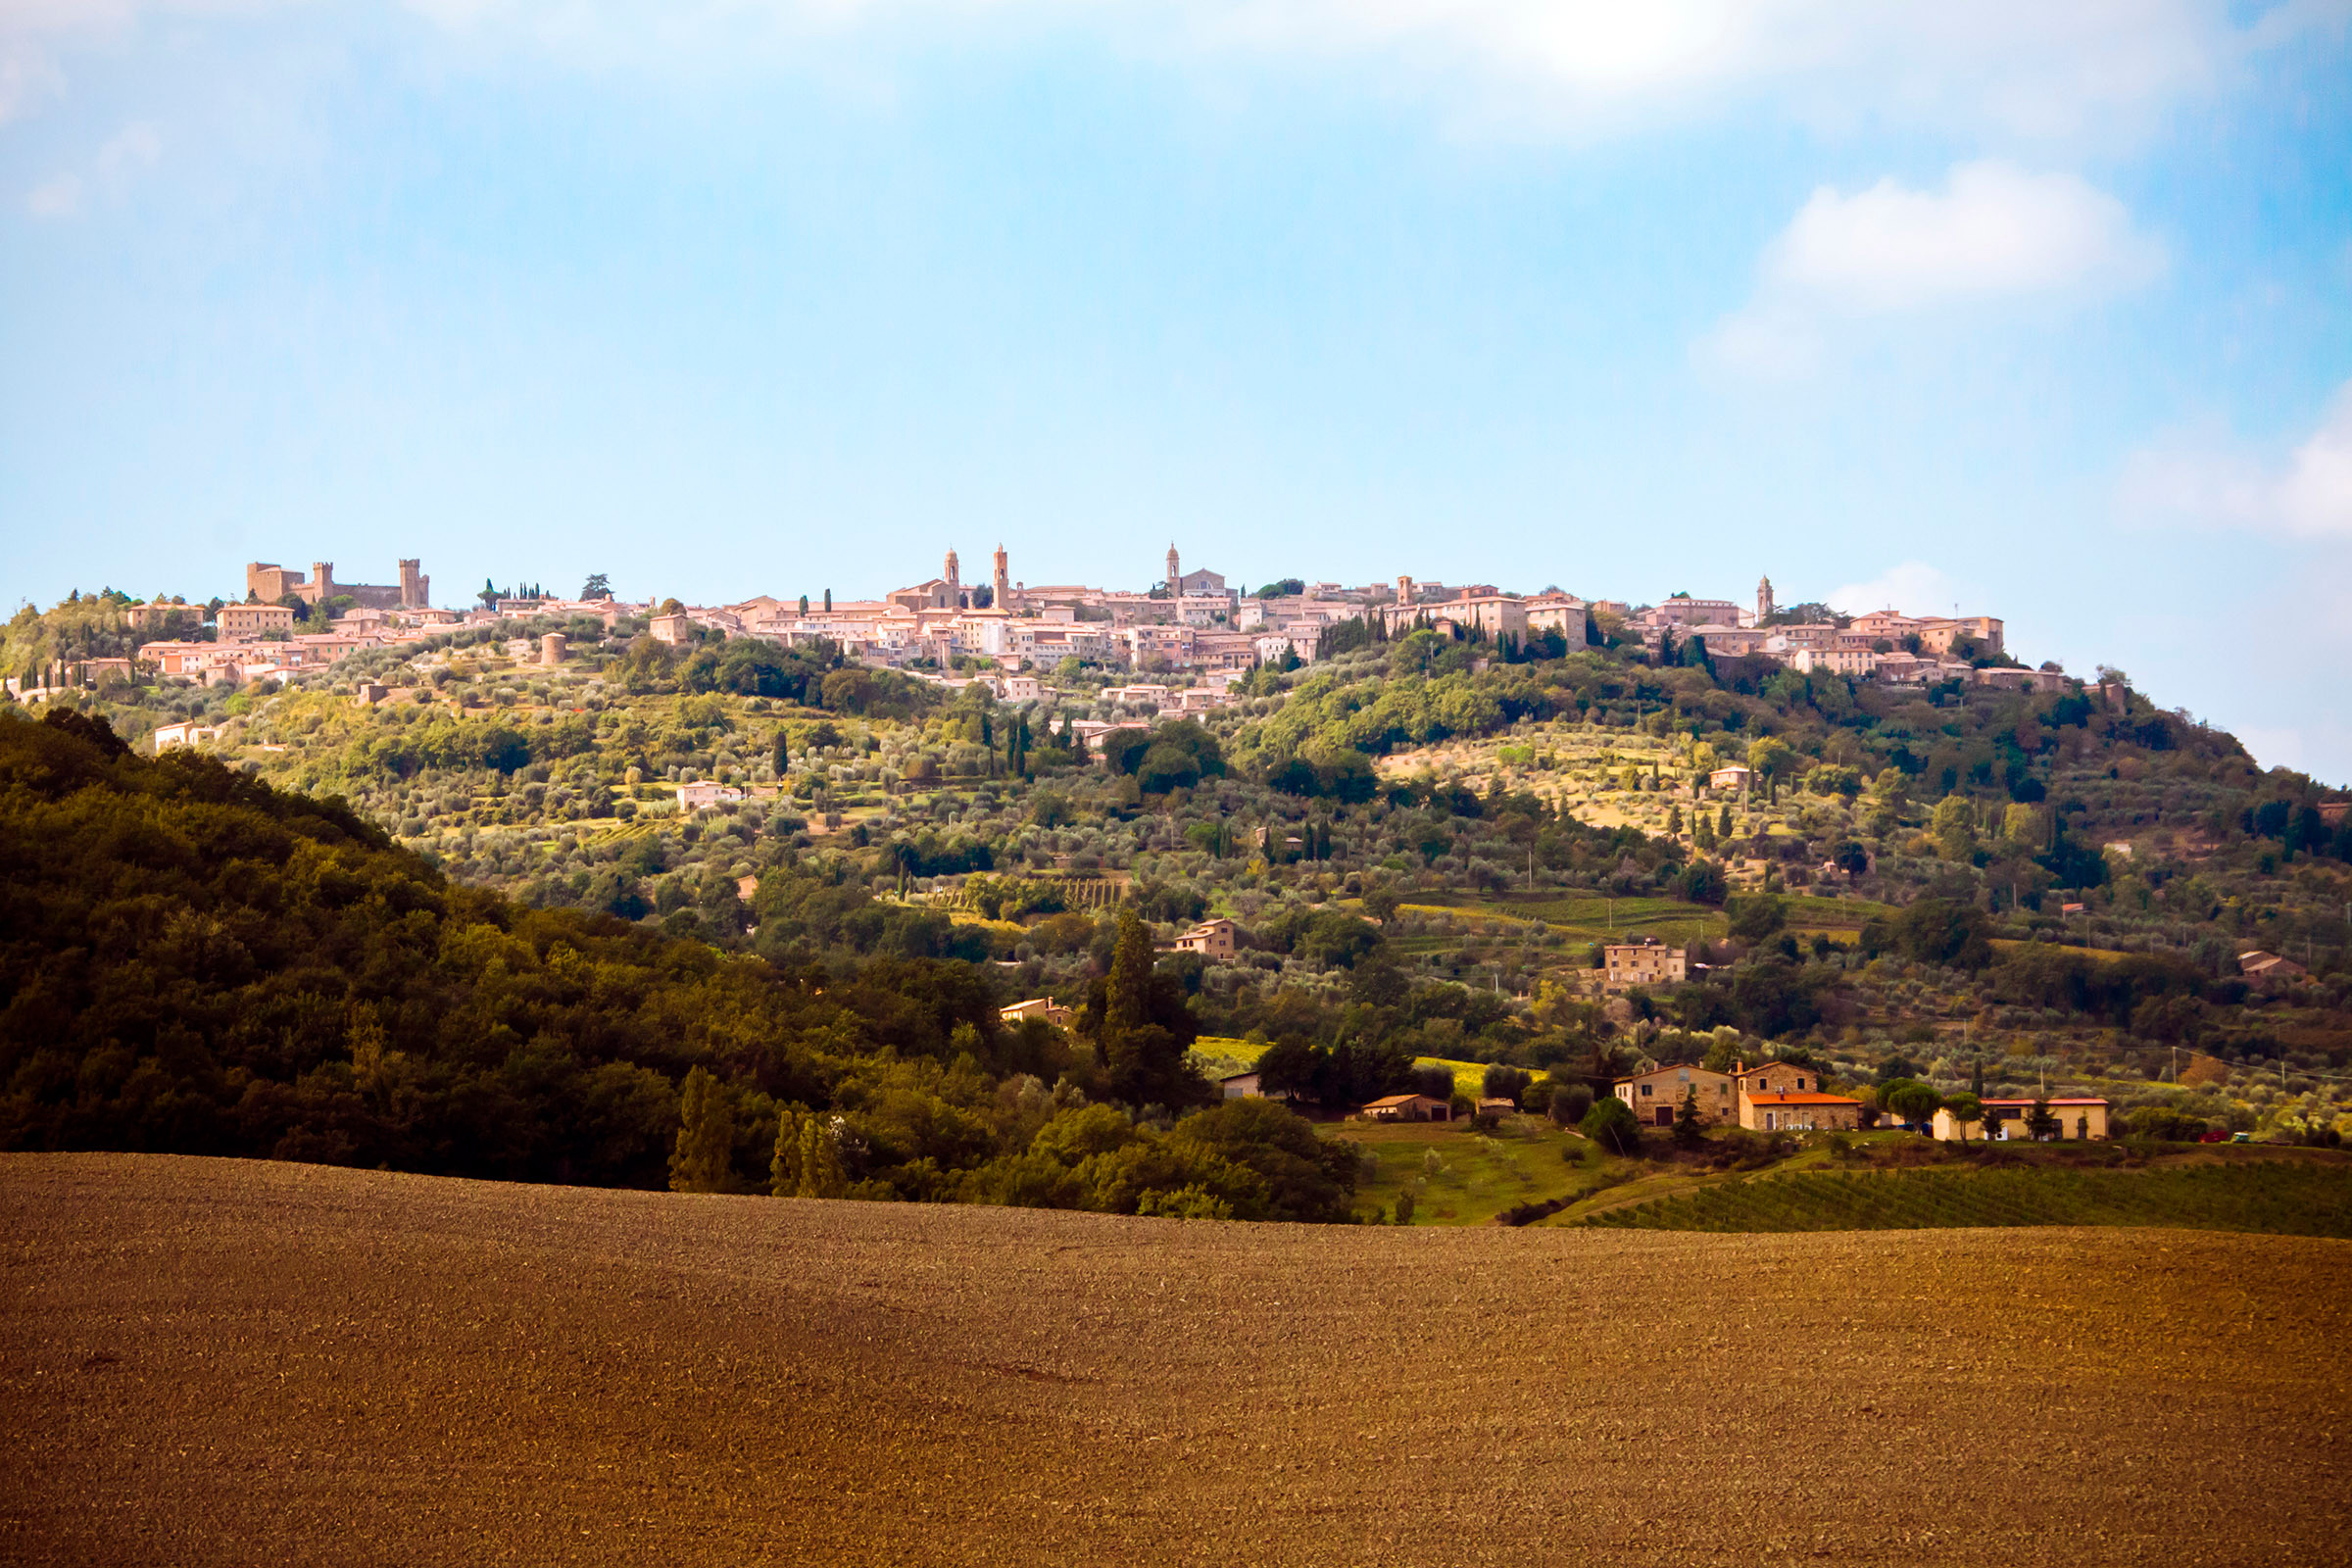 Montalcino in southern Tuscany